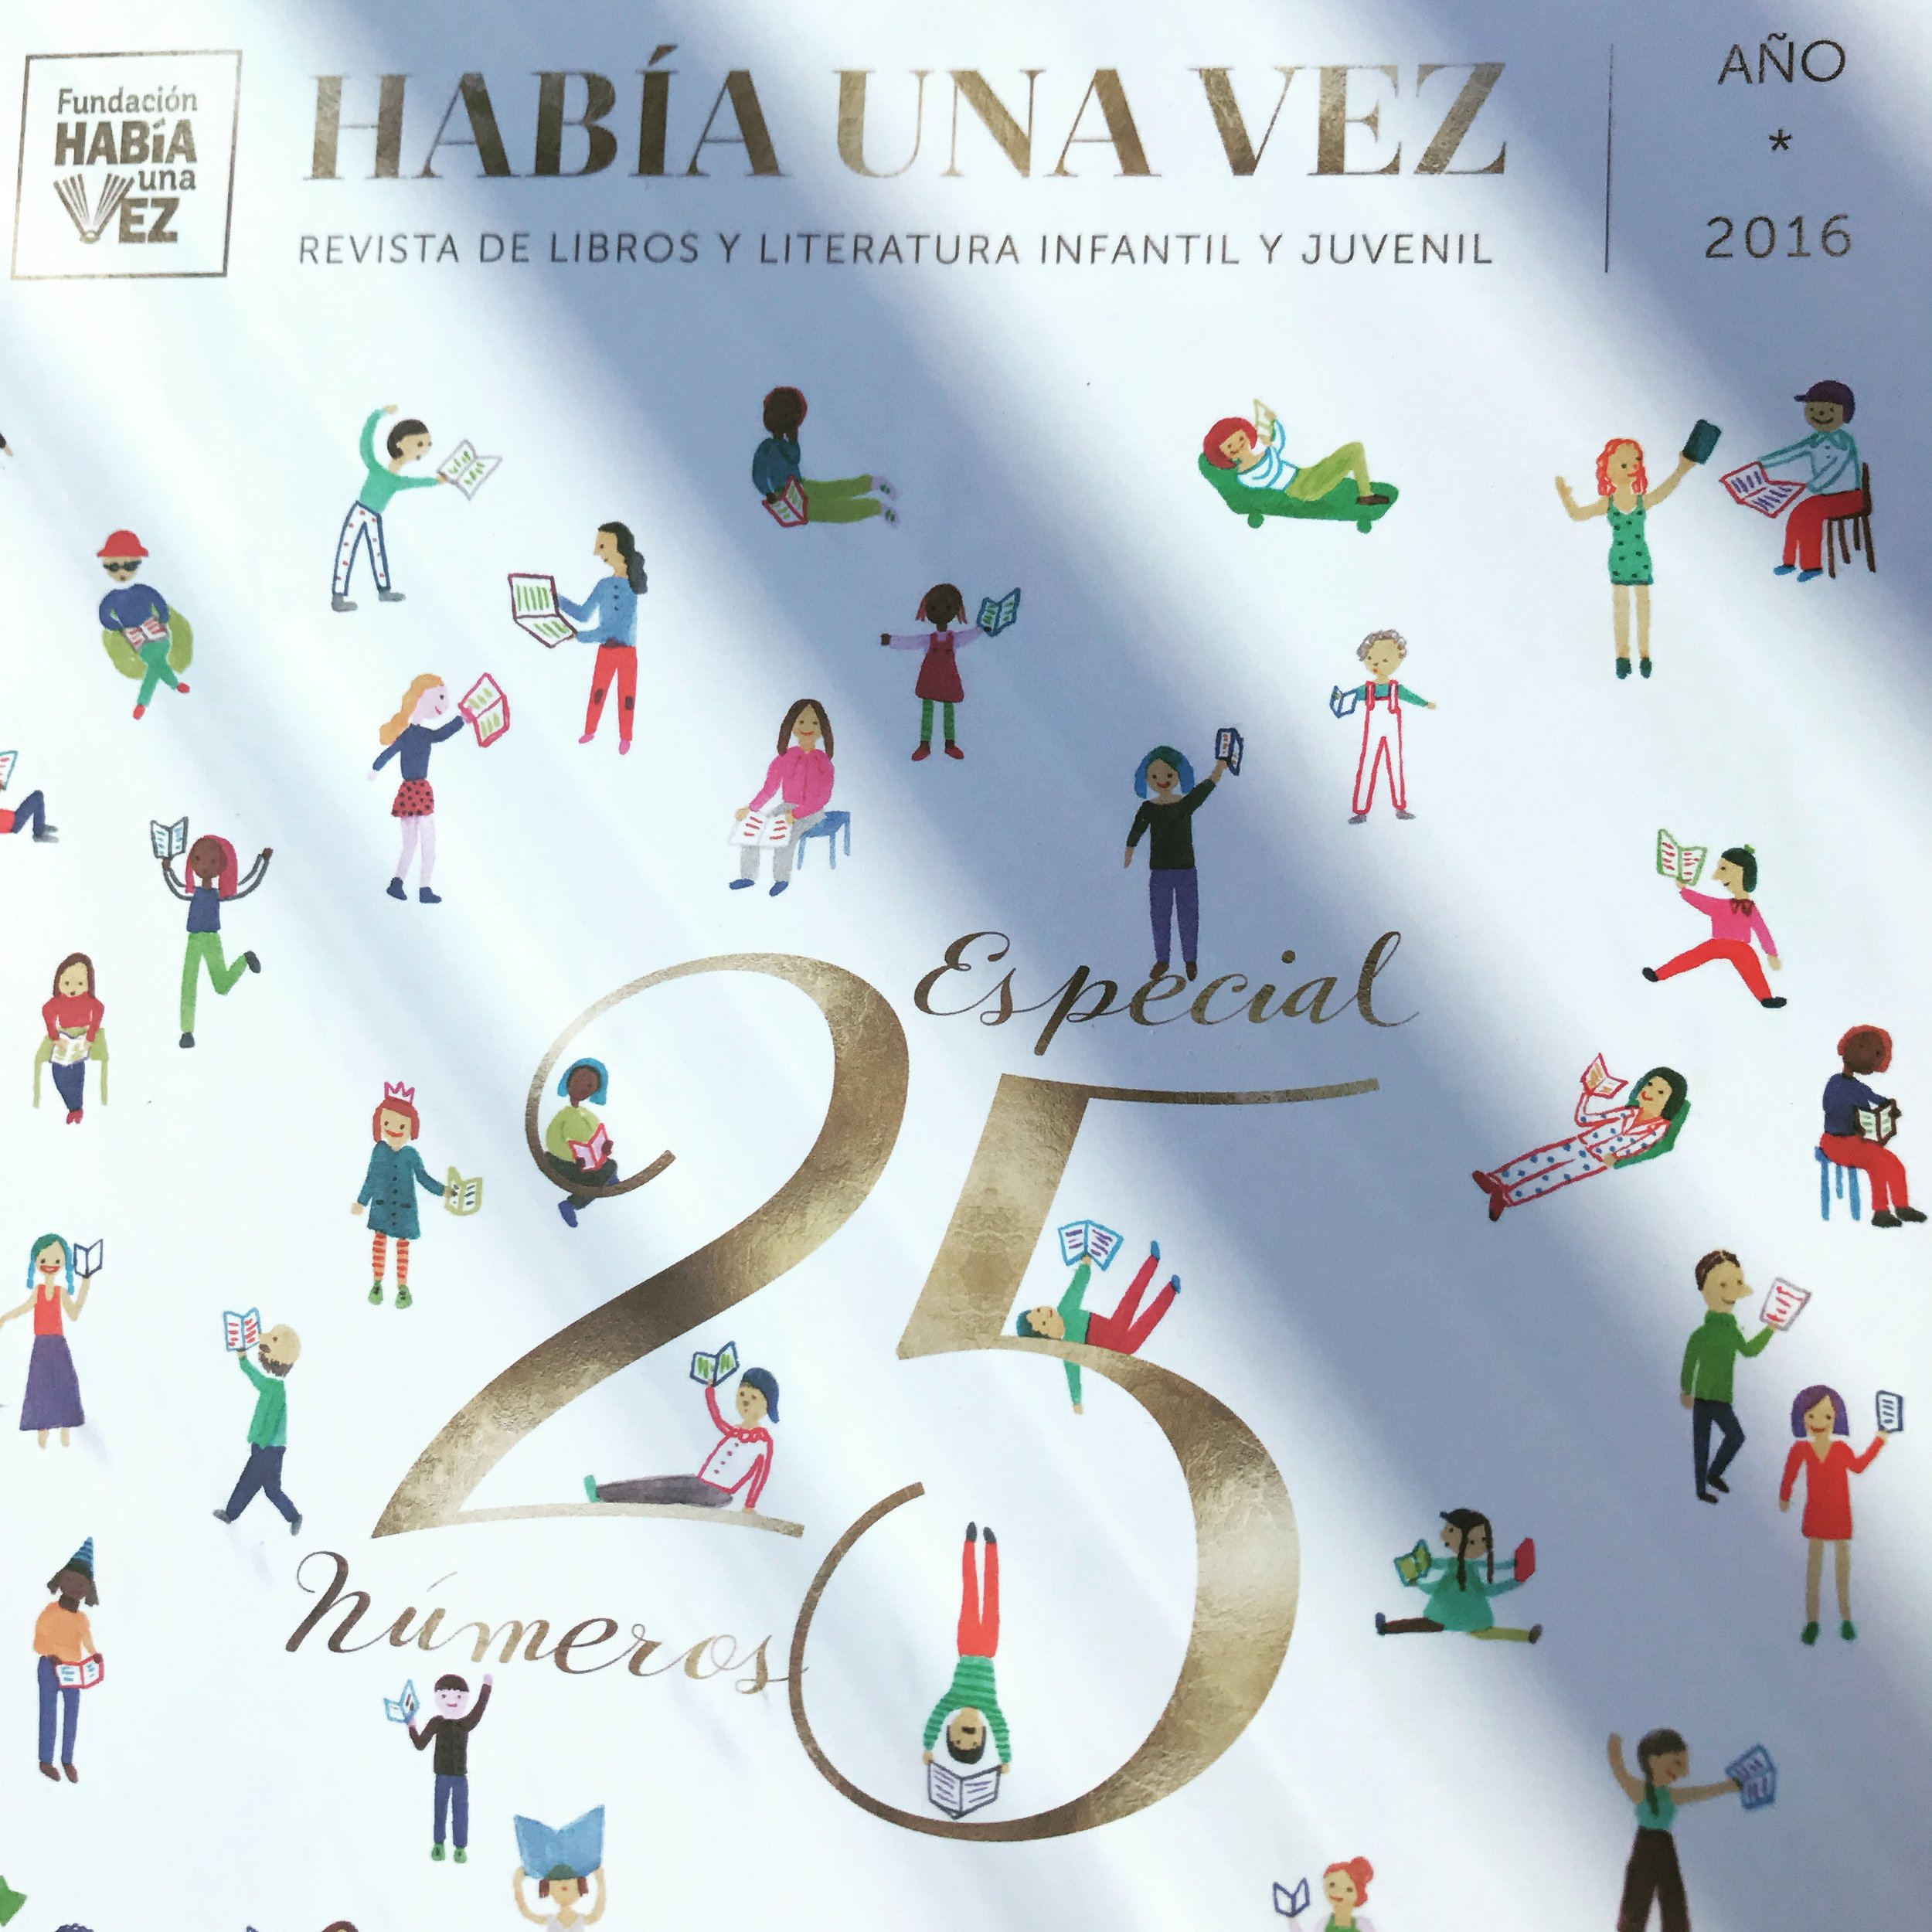 Fundación Había una Vez publishes a [quarterly?] magazine. This is the 25th anniversary issue I received from the foundation.